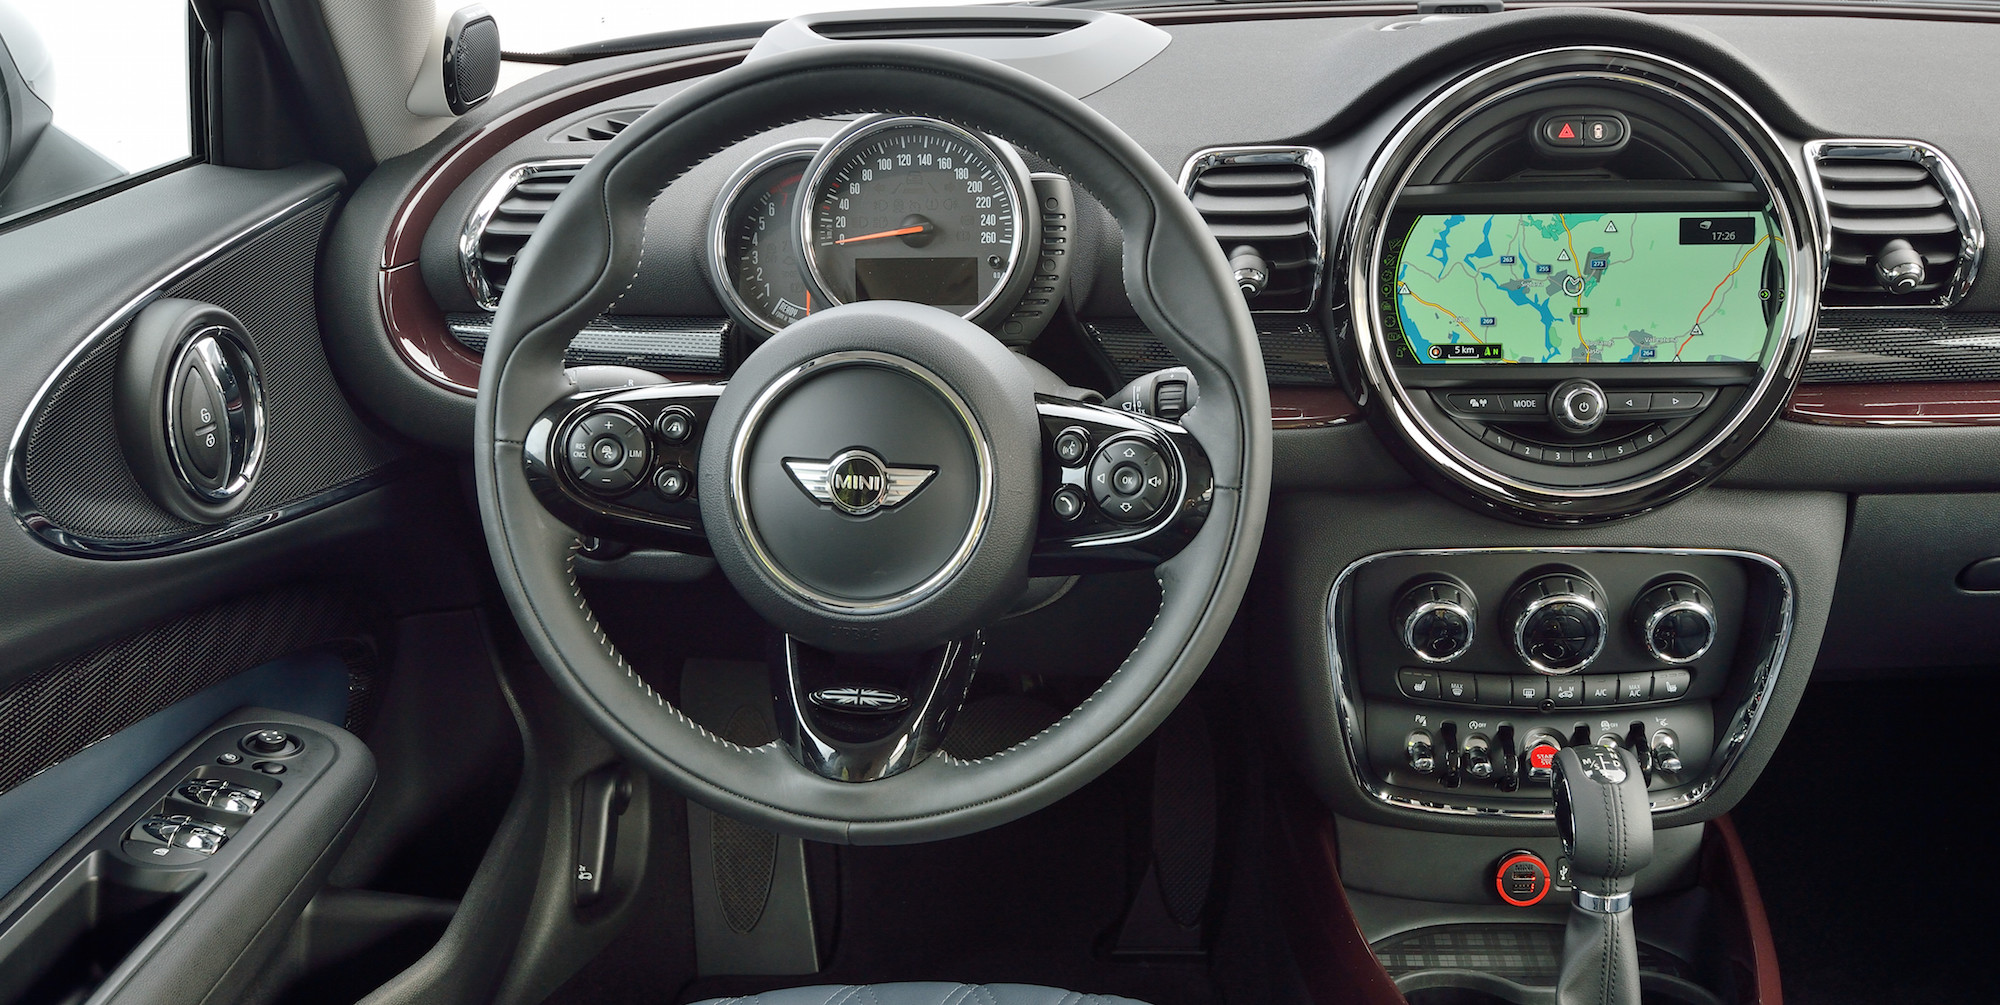 2016 Mini Cooper S Clubman Cockpit Interior (Photo 4 of 17)